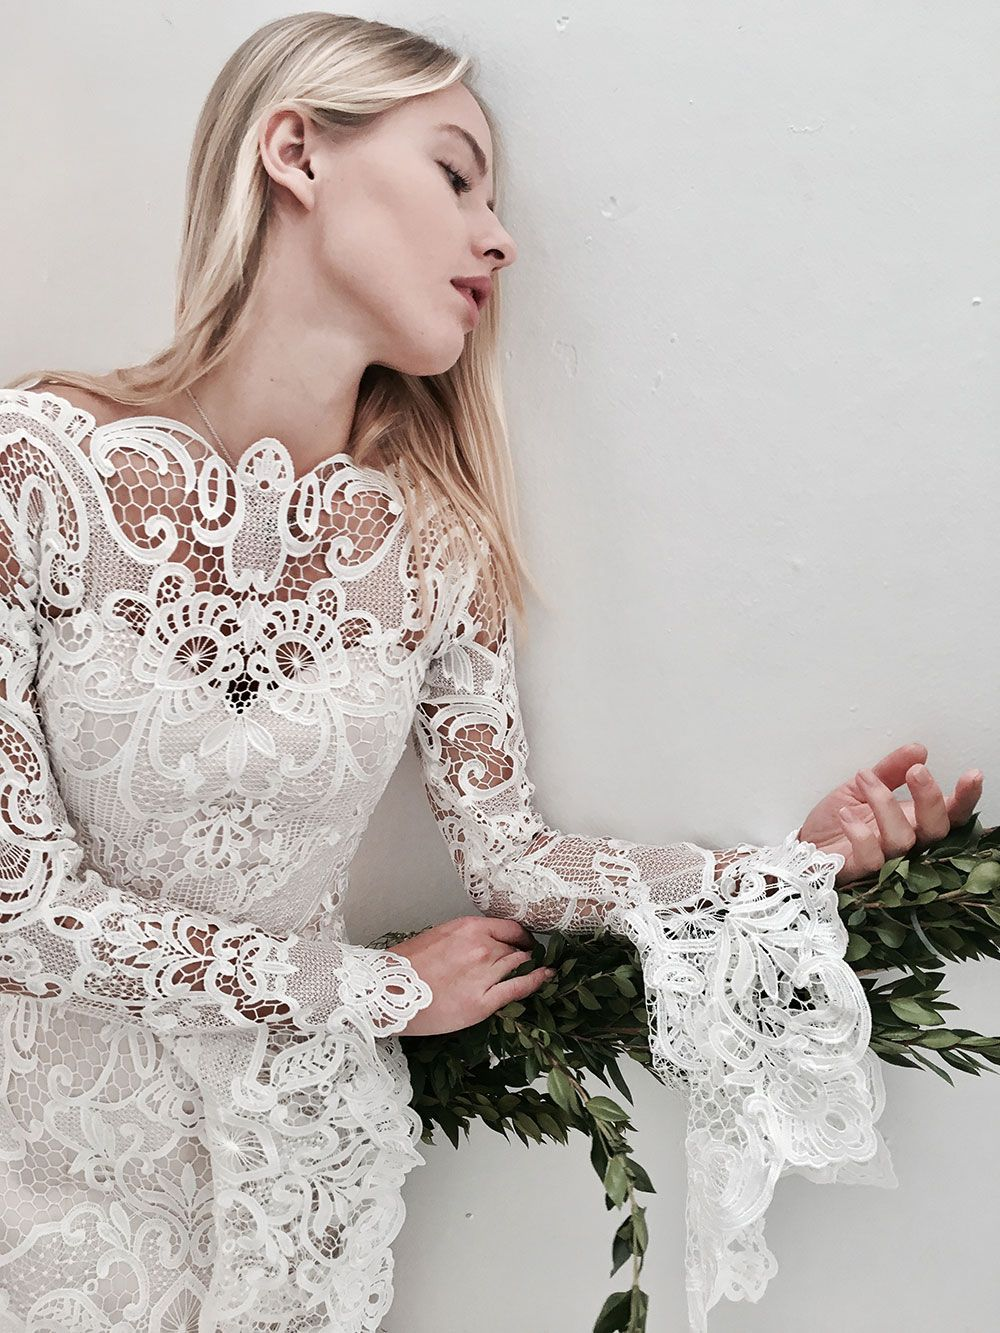 Bold Geometric Patterns Long Sleeves And Lovely Lace Queensland Brides Bohemian Wedding Dress Lace Designer Wedding Gowns Wedding Dresses Lace